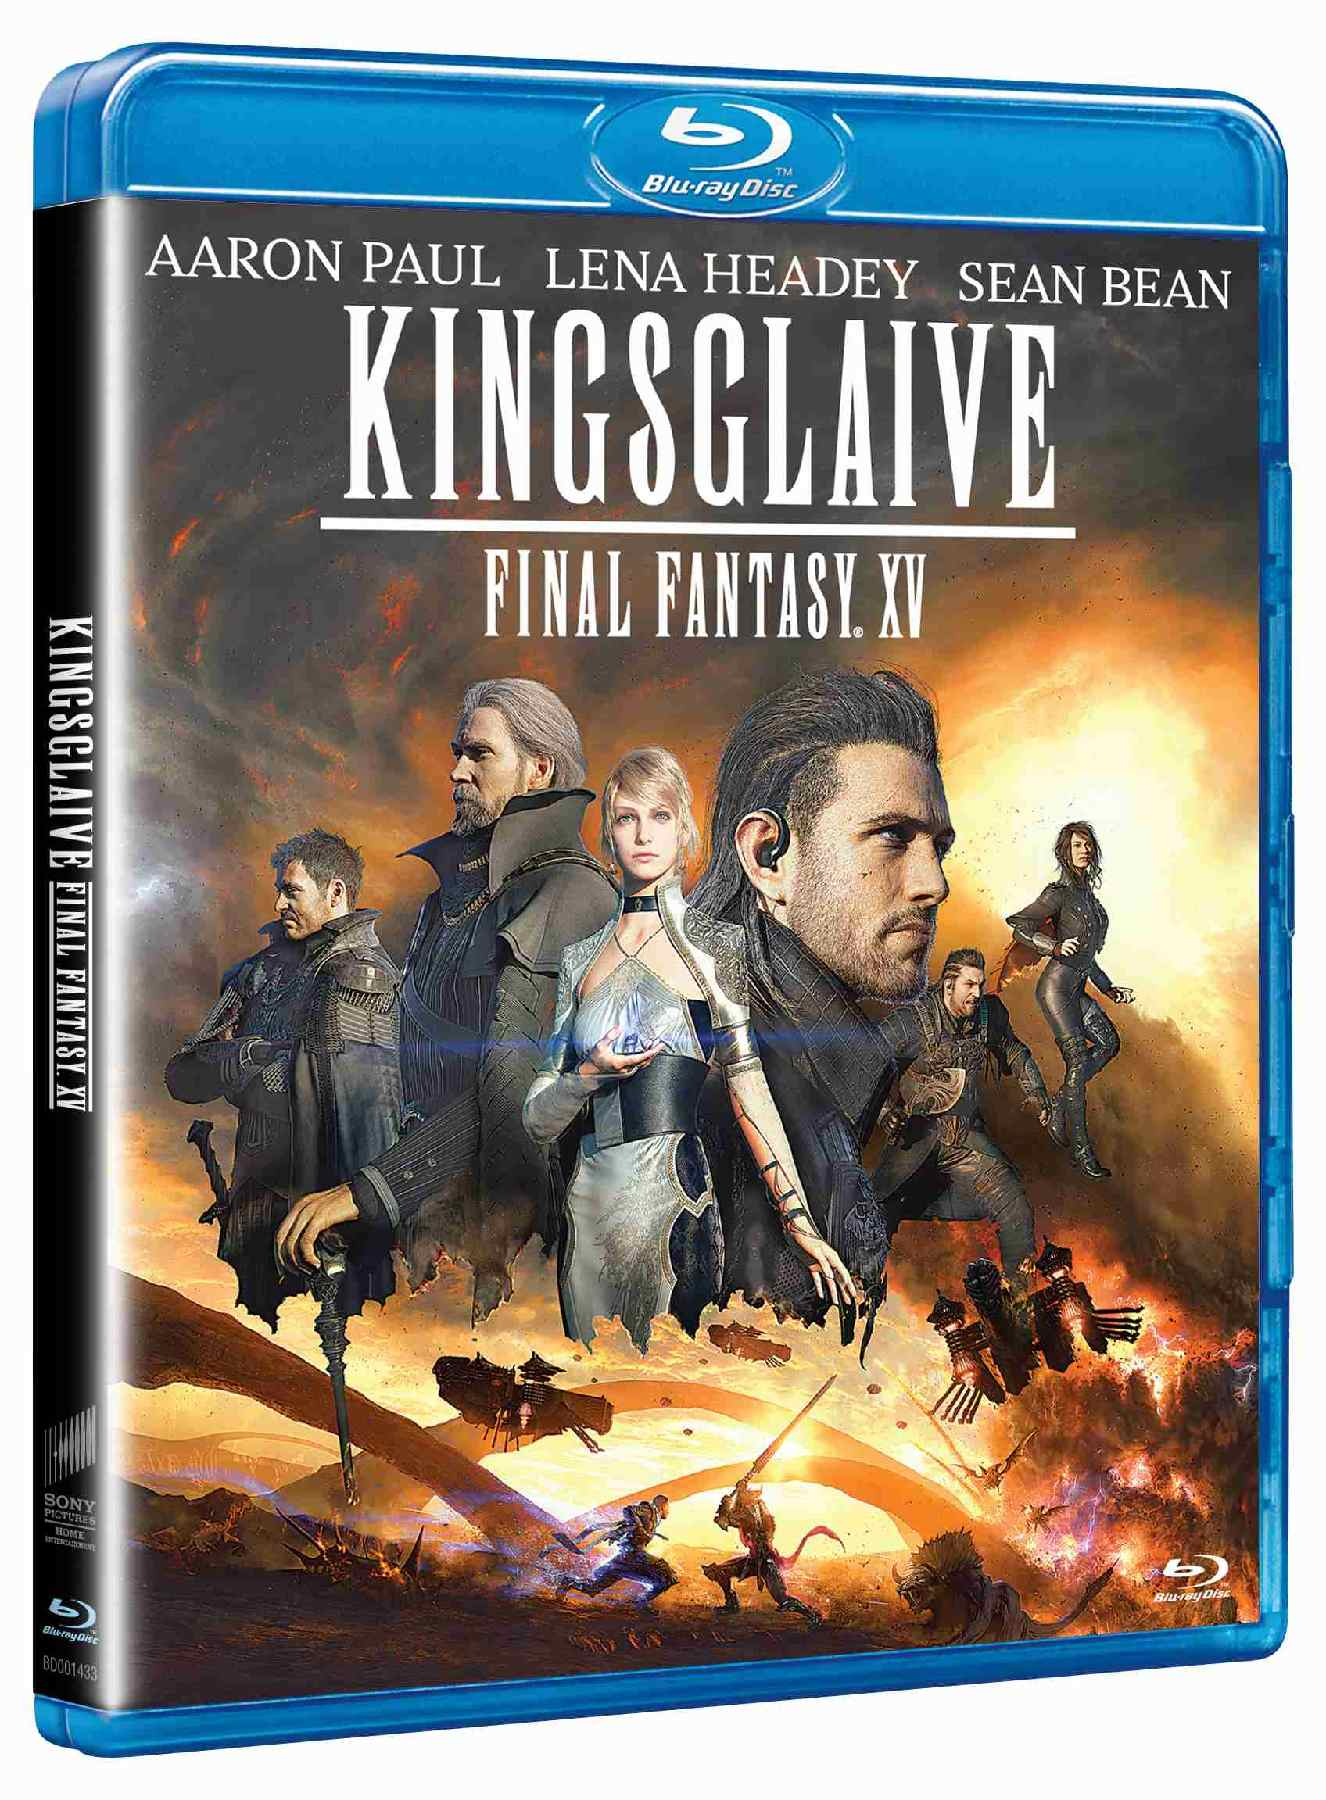 KINGSGLAIVE: FINAL FANTASY XV - Blu-ray